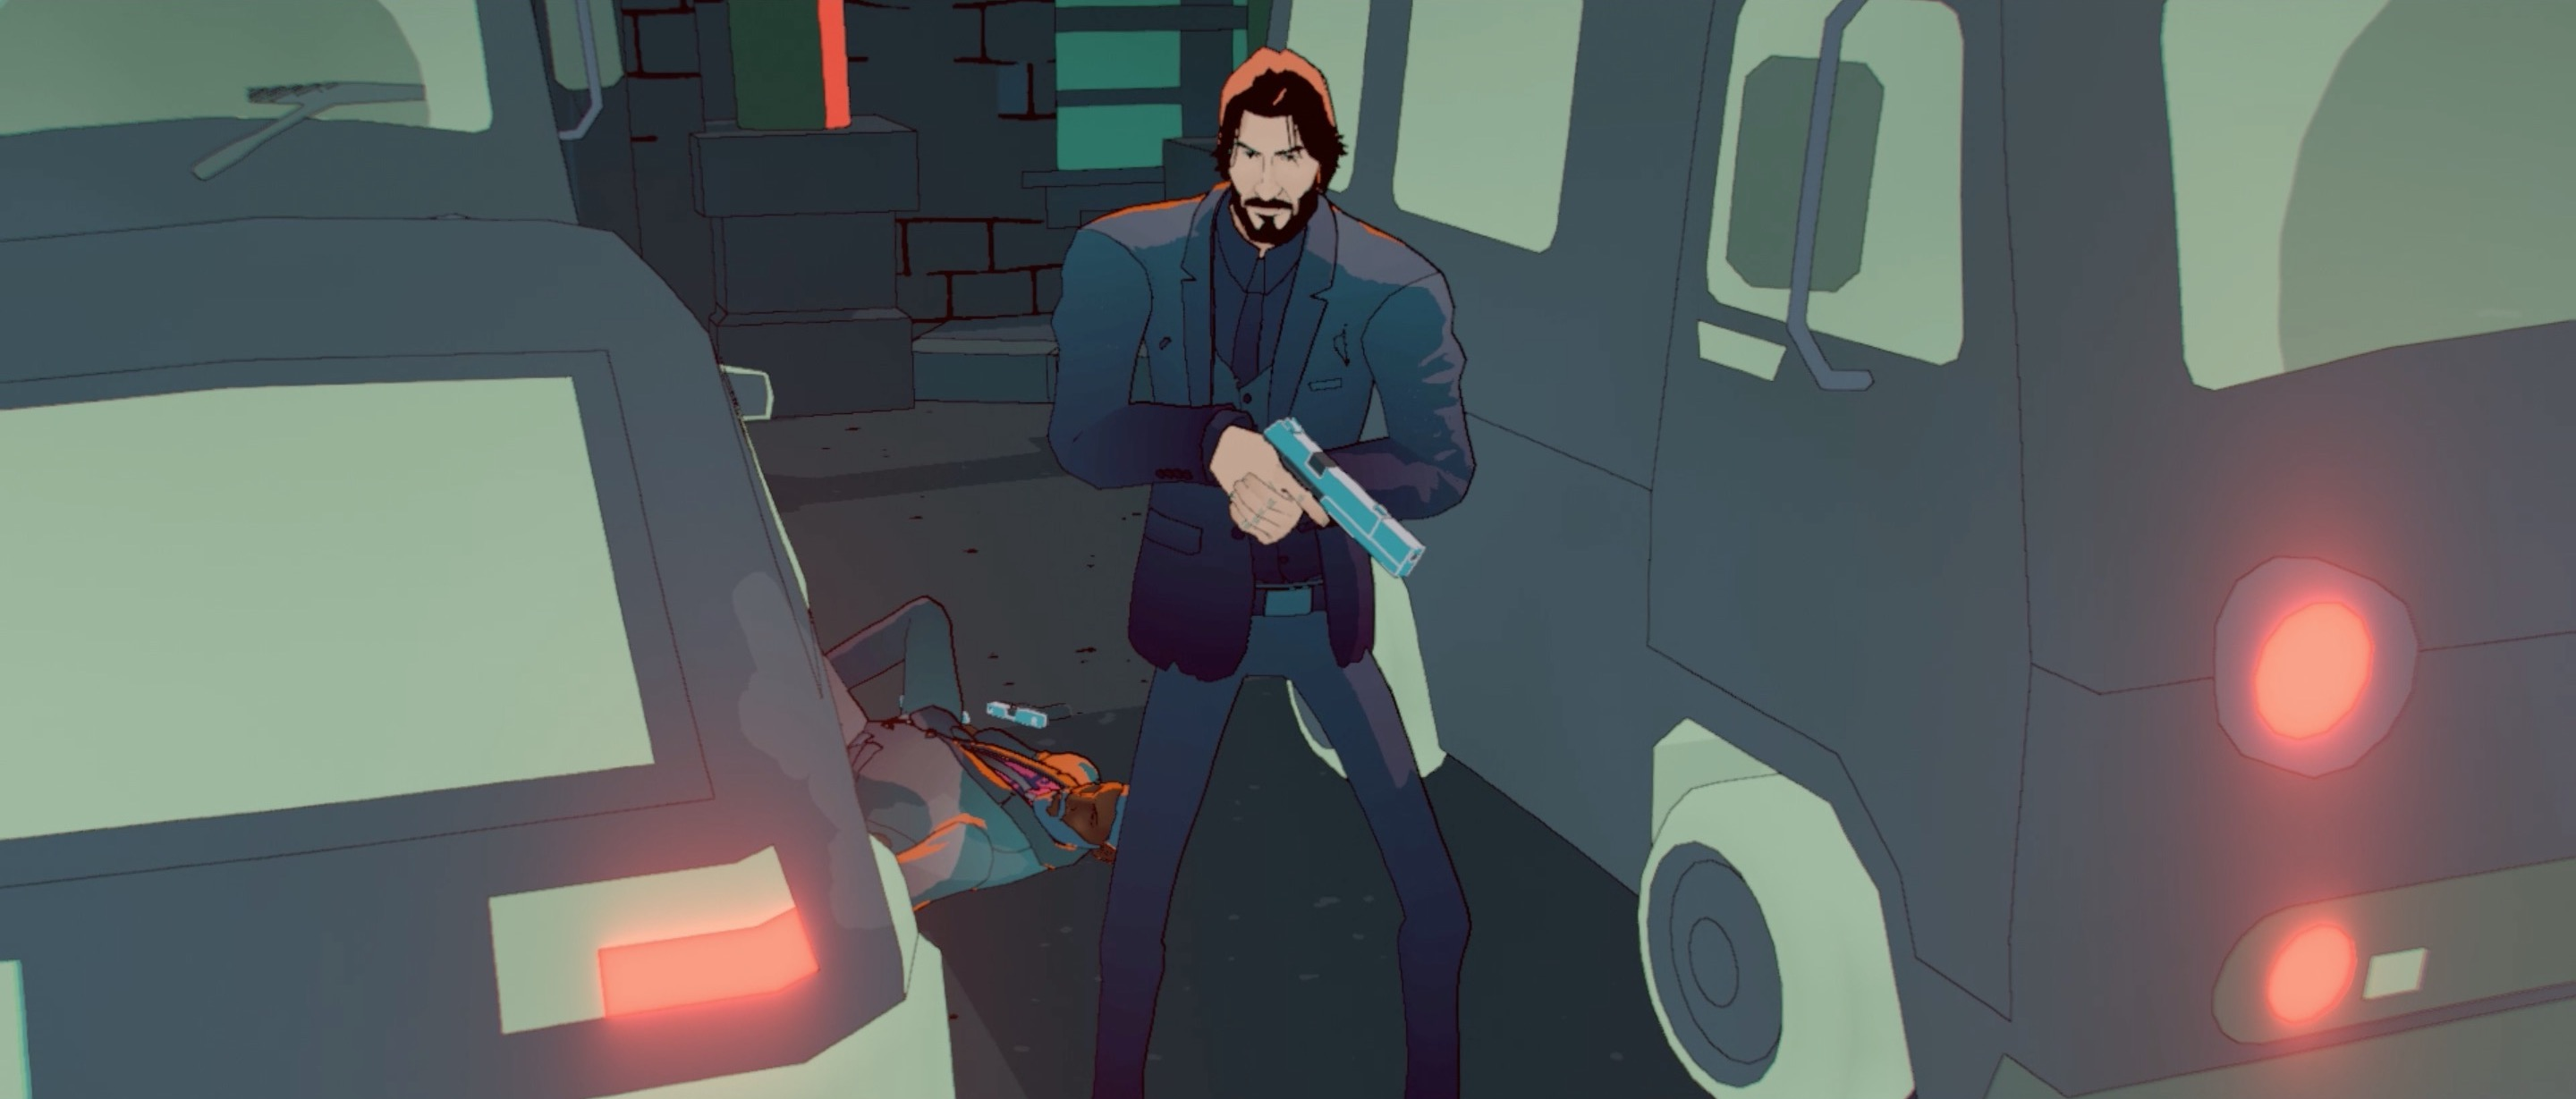 John Wick Hex: The action 'film' that plays like a board game